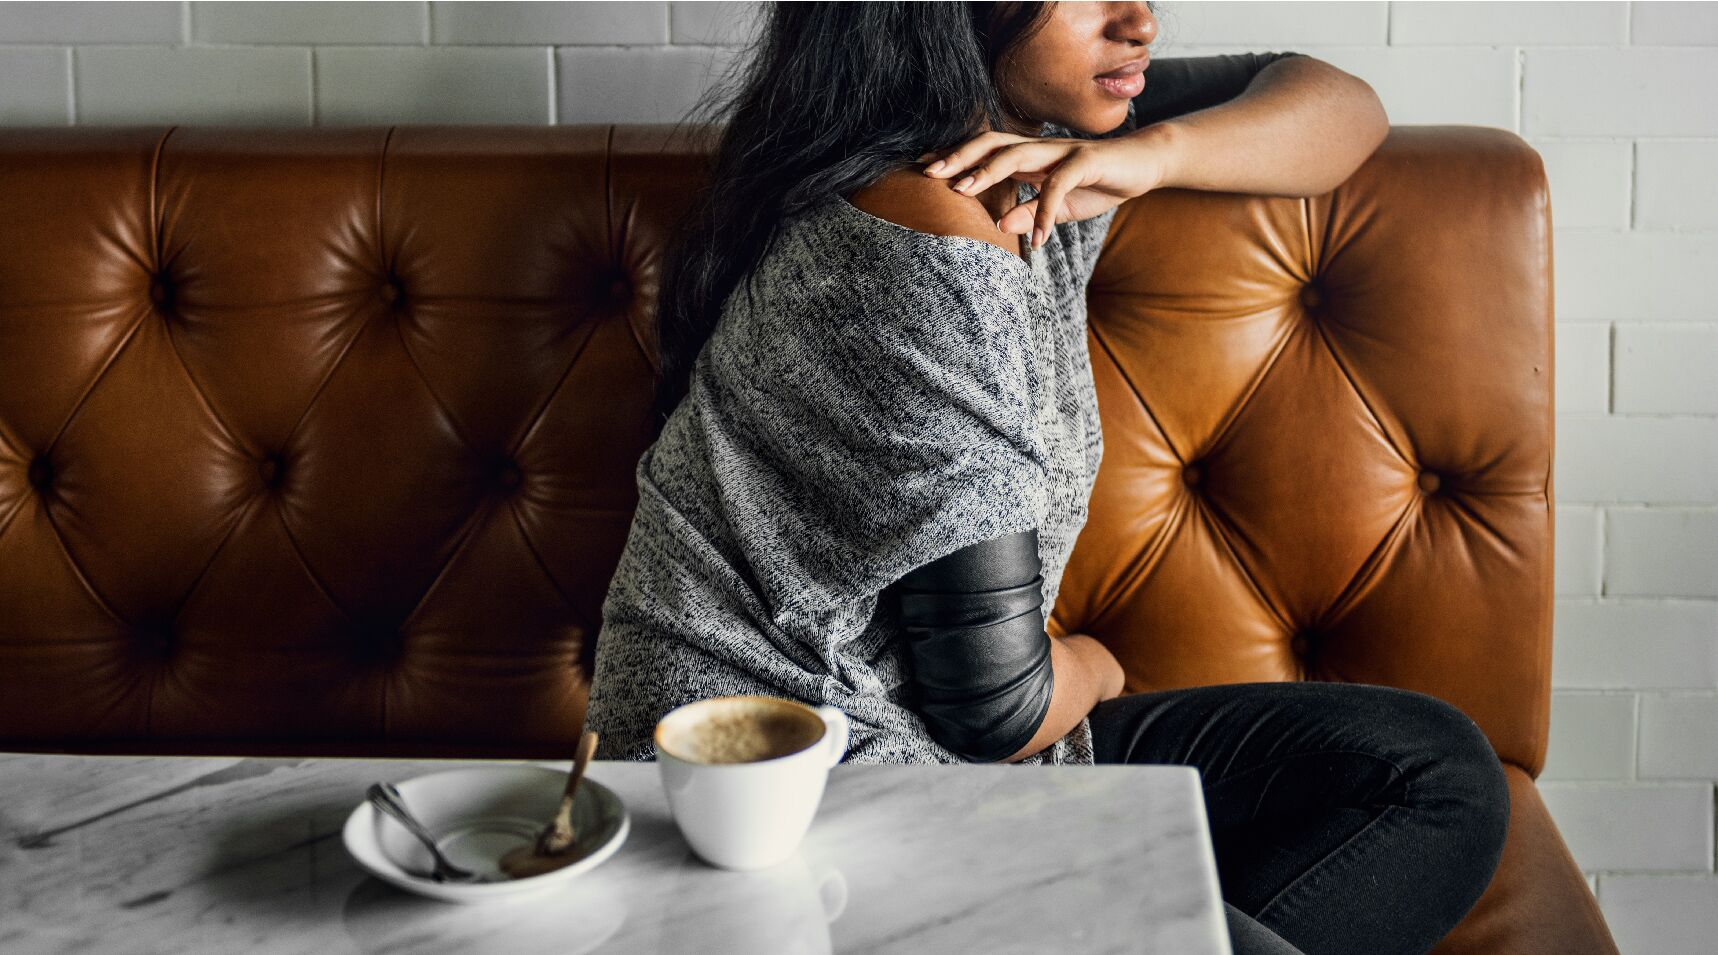 woman in a coffe shop sitting alone with a defensive posture